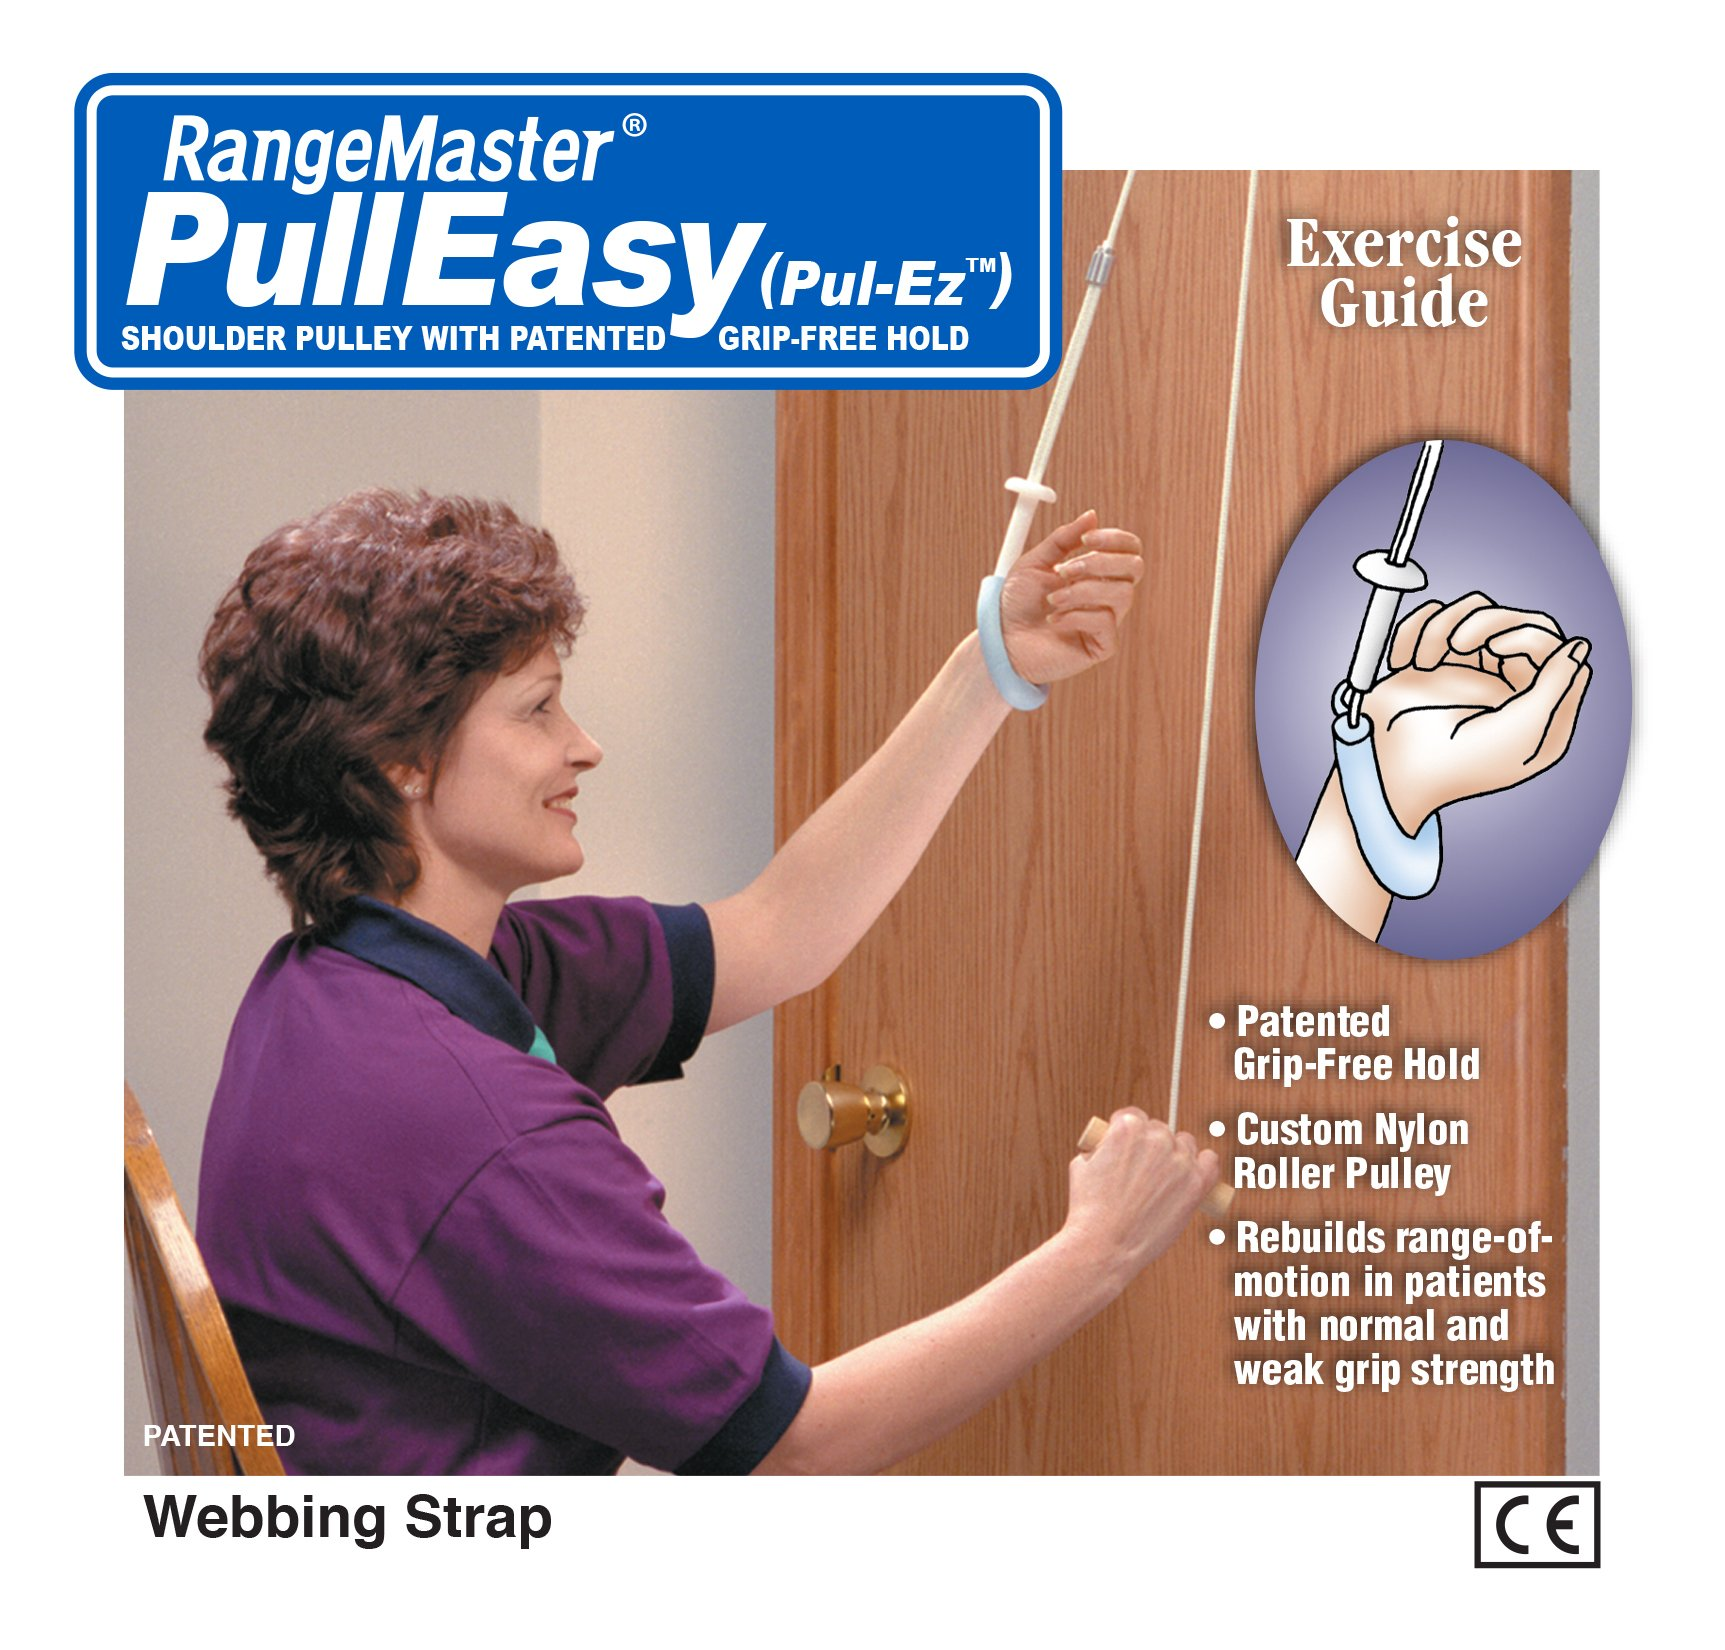 Pull-Easy Grip Free Shoulder Pulley with Patient Guide - Web Strap Door Attachment by RangeMaster (Image #2)